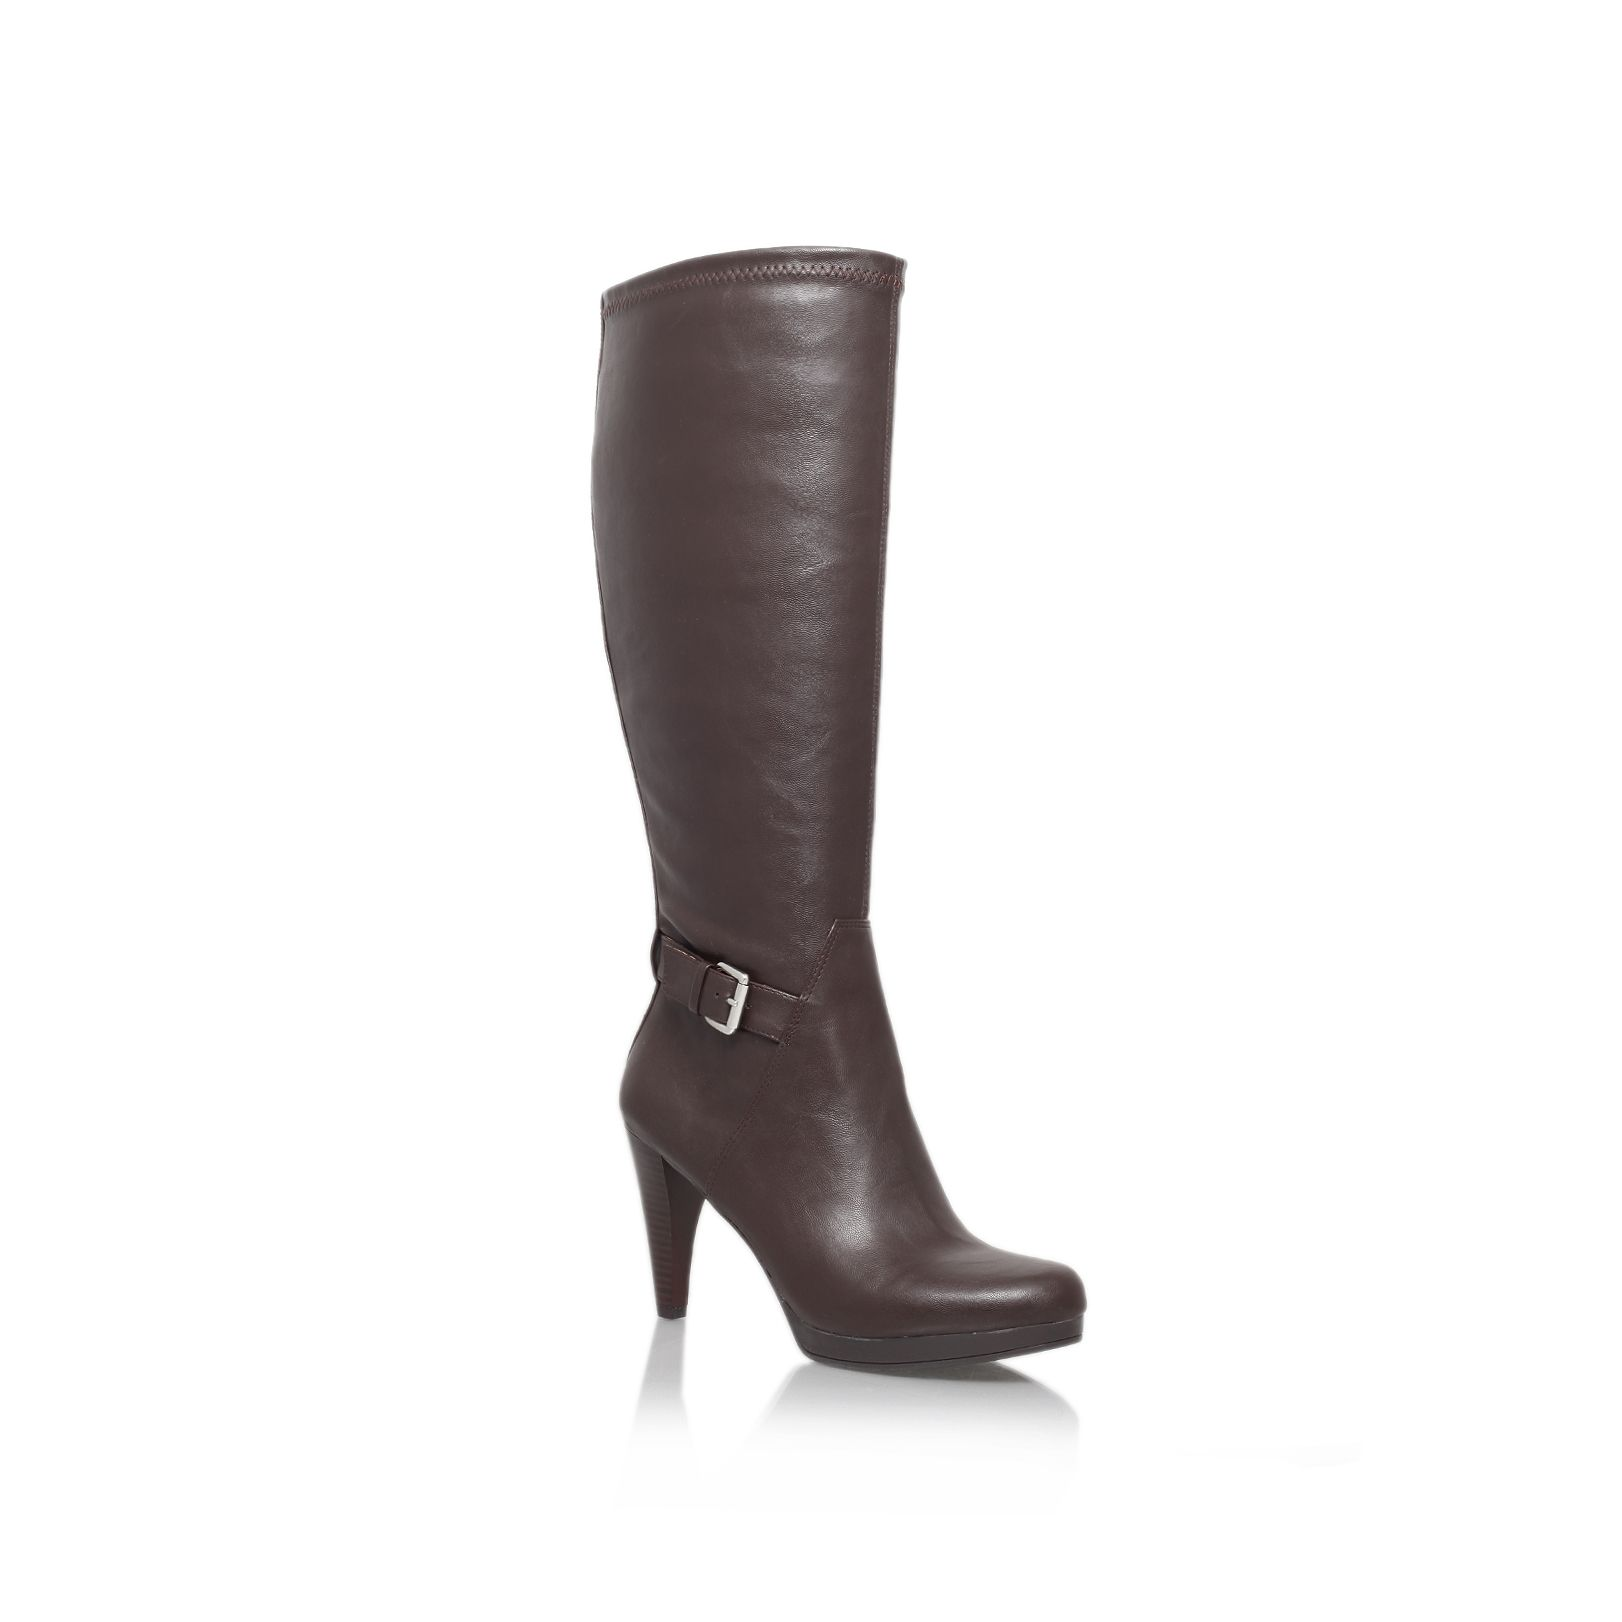 Nativa High Heeled Knee High Boots